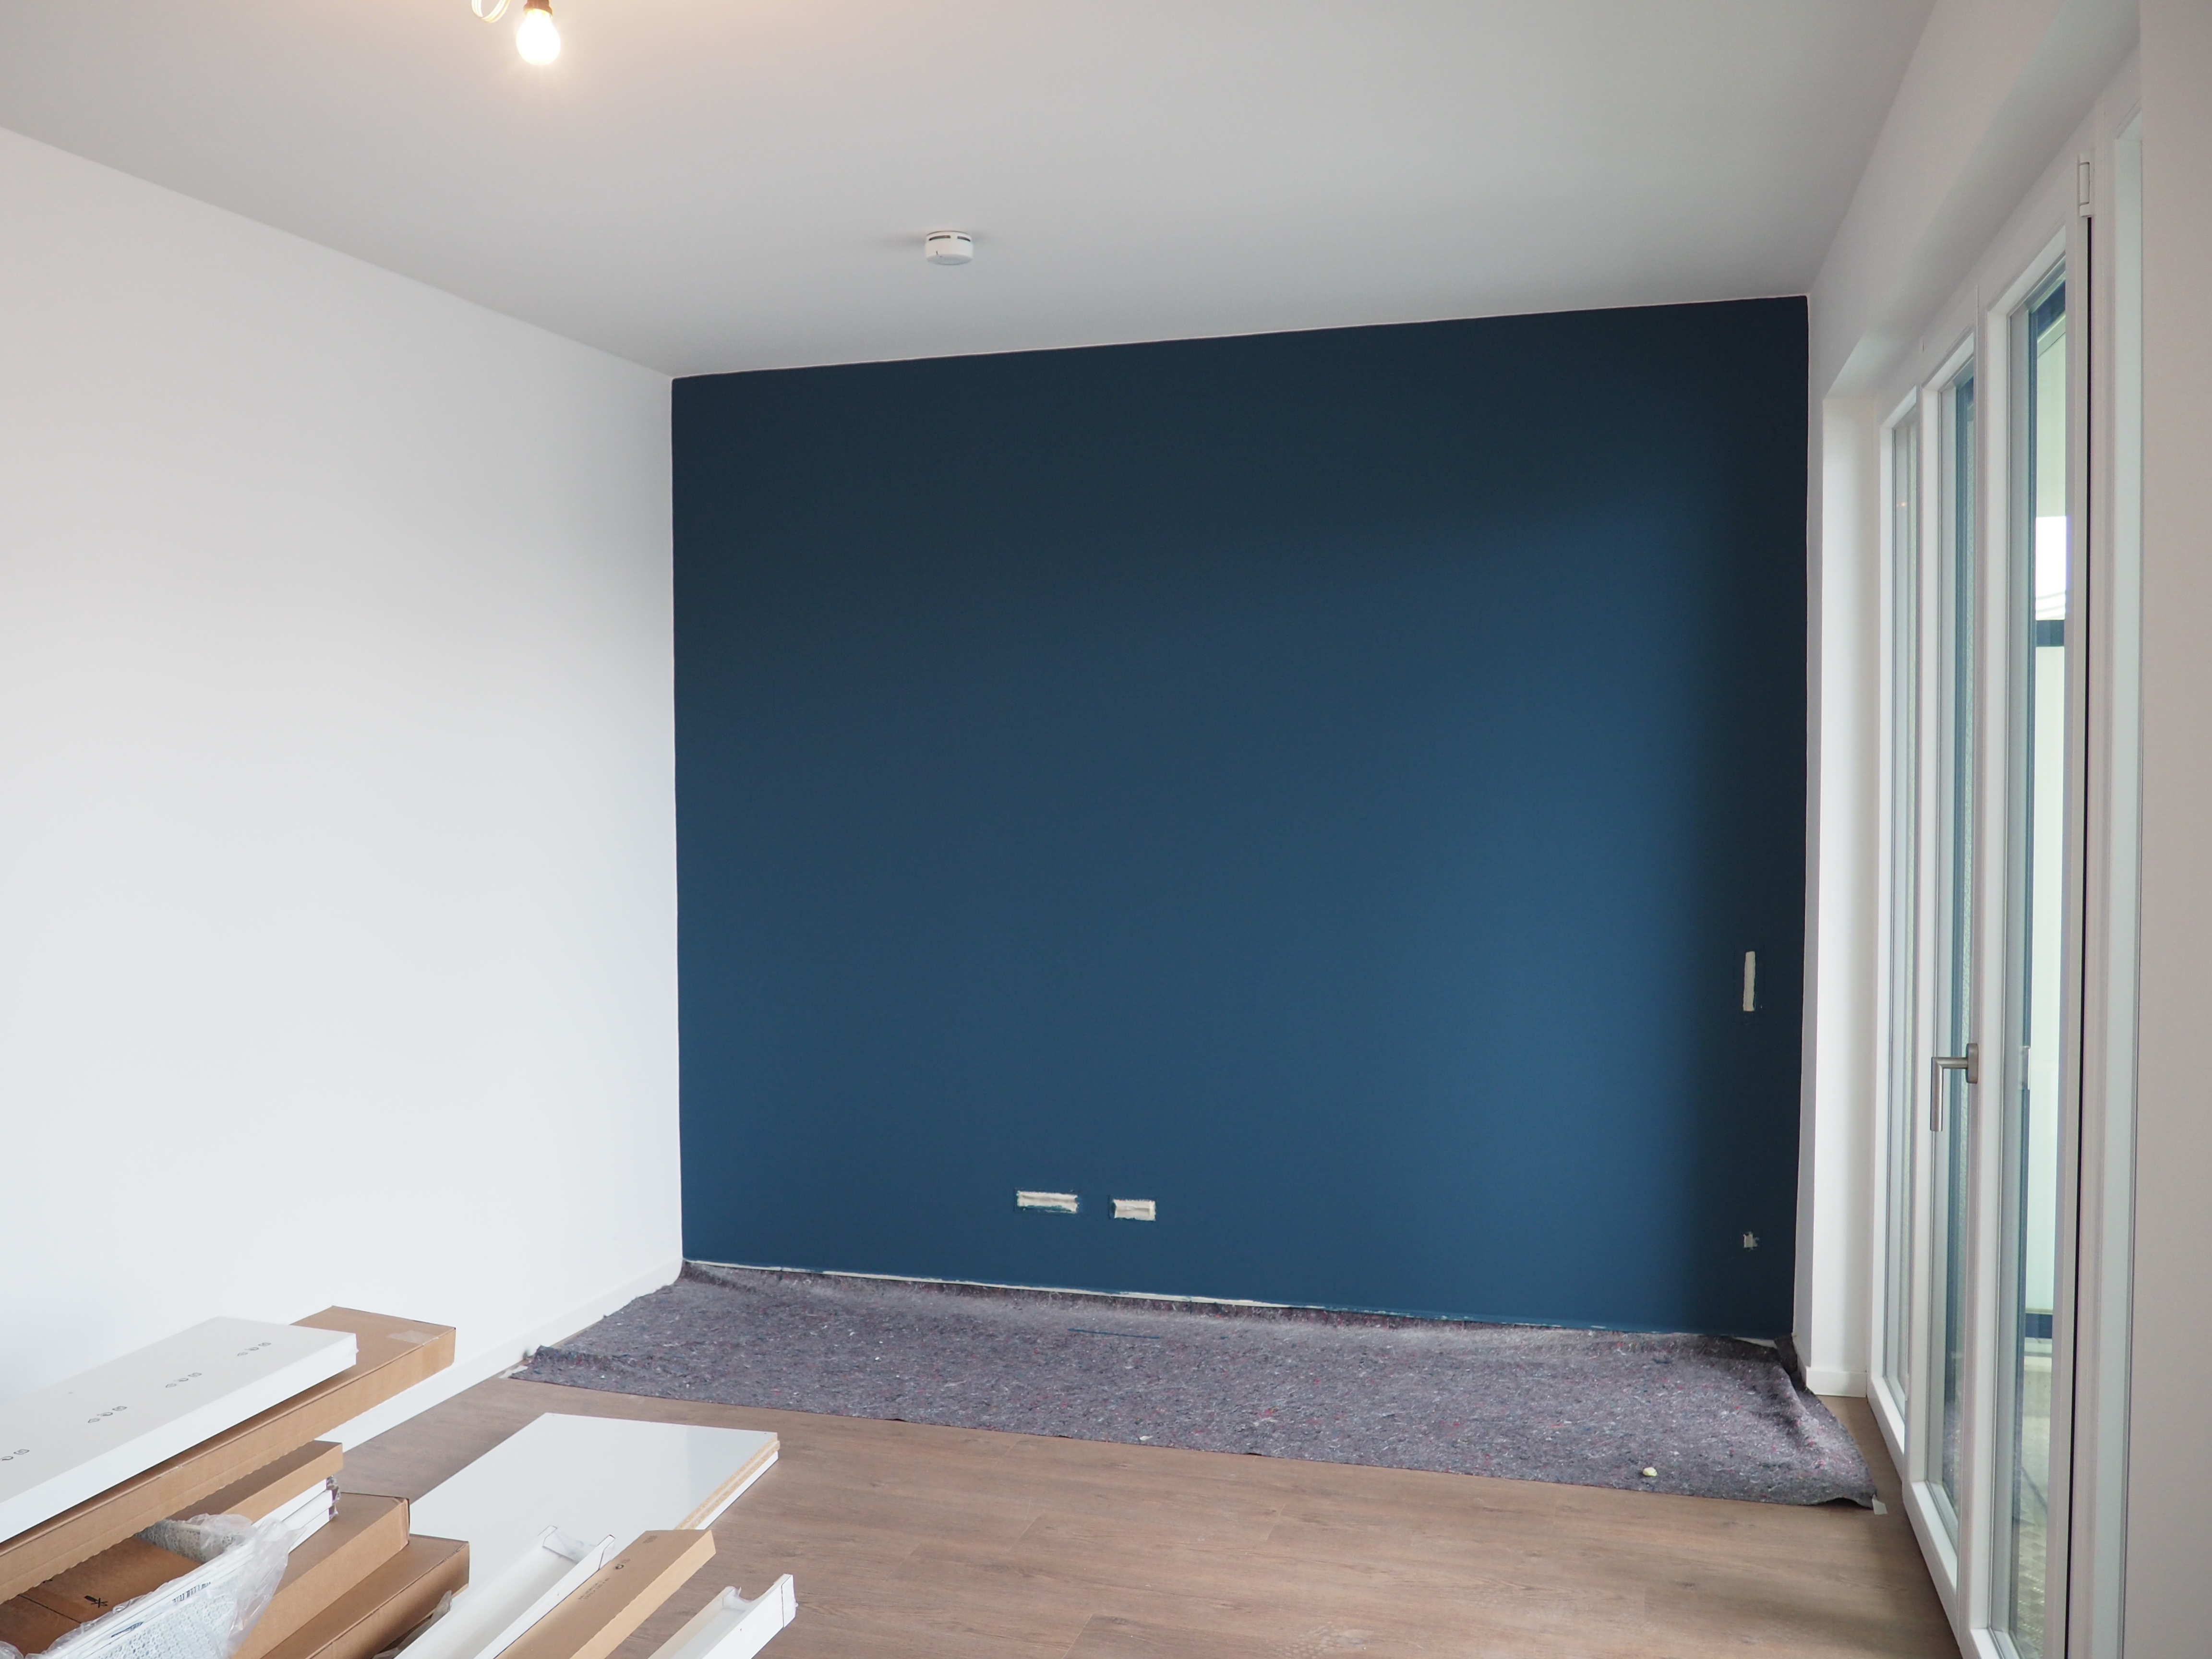 Küche Wand Dunkelblau Die Kuschelzone Nimmt Form An By Andy For Better Moods